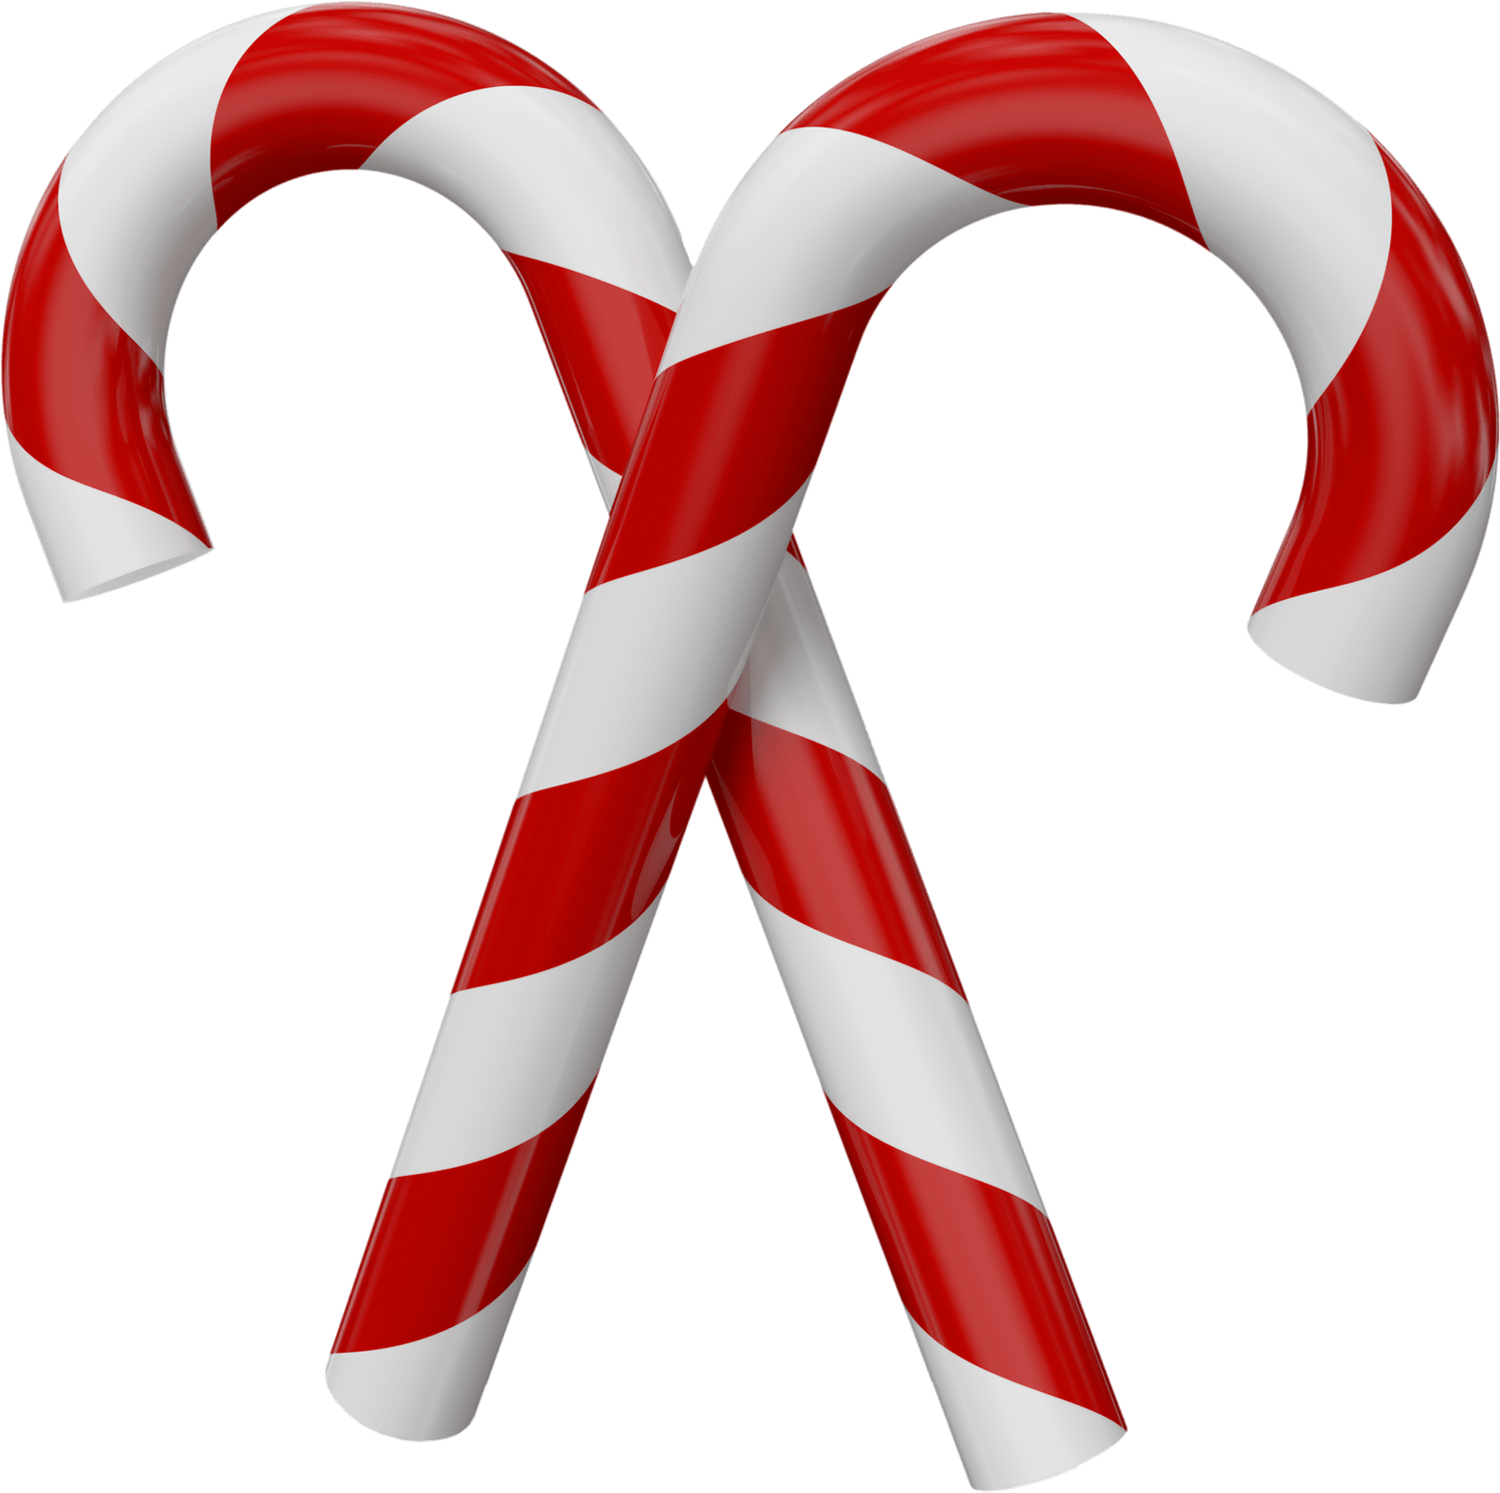 Large_Transparent_Christmas_Candy_Canes.png (1500×1493